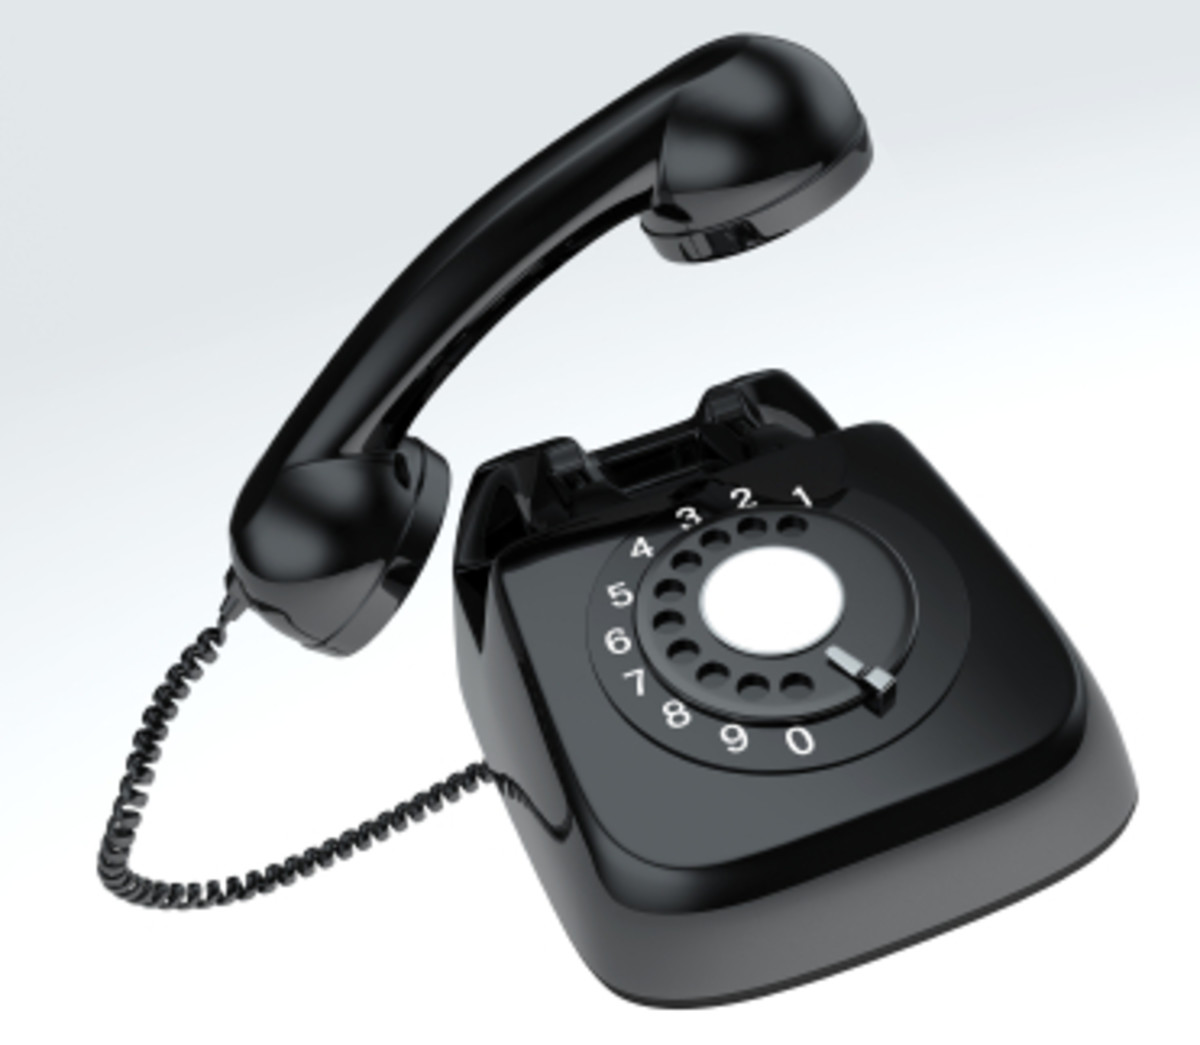 Not the phone again! Old fashioned, black dial phone.